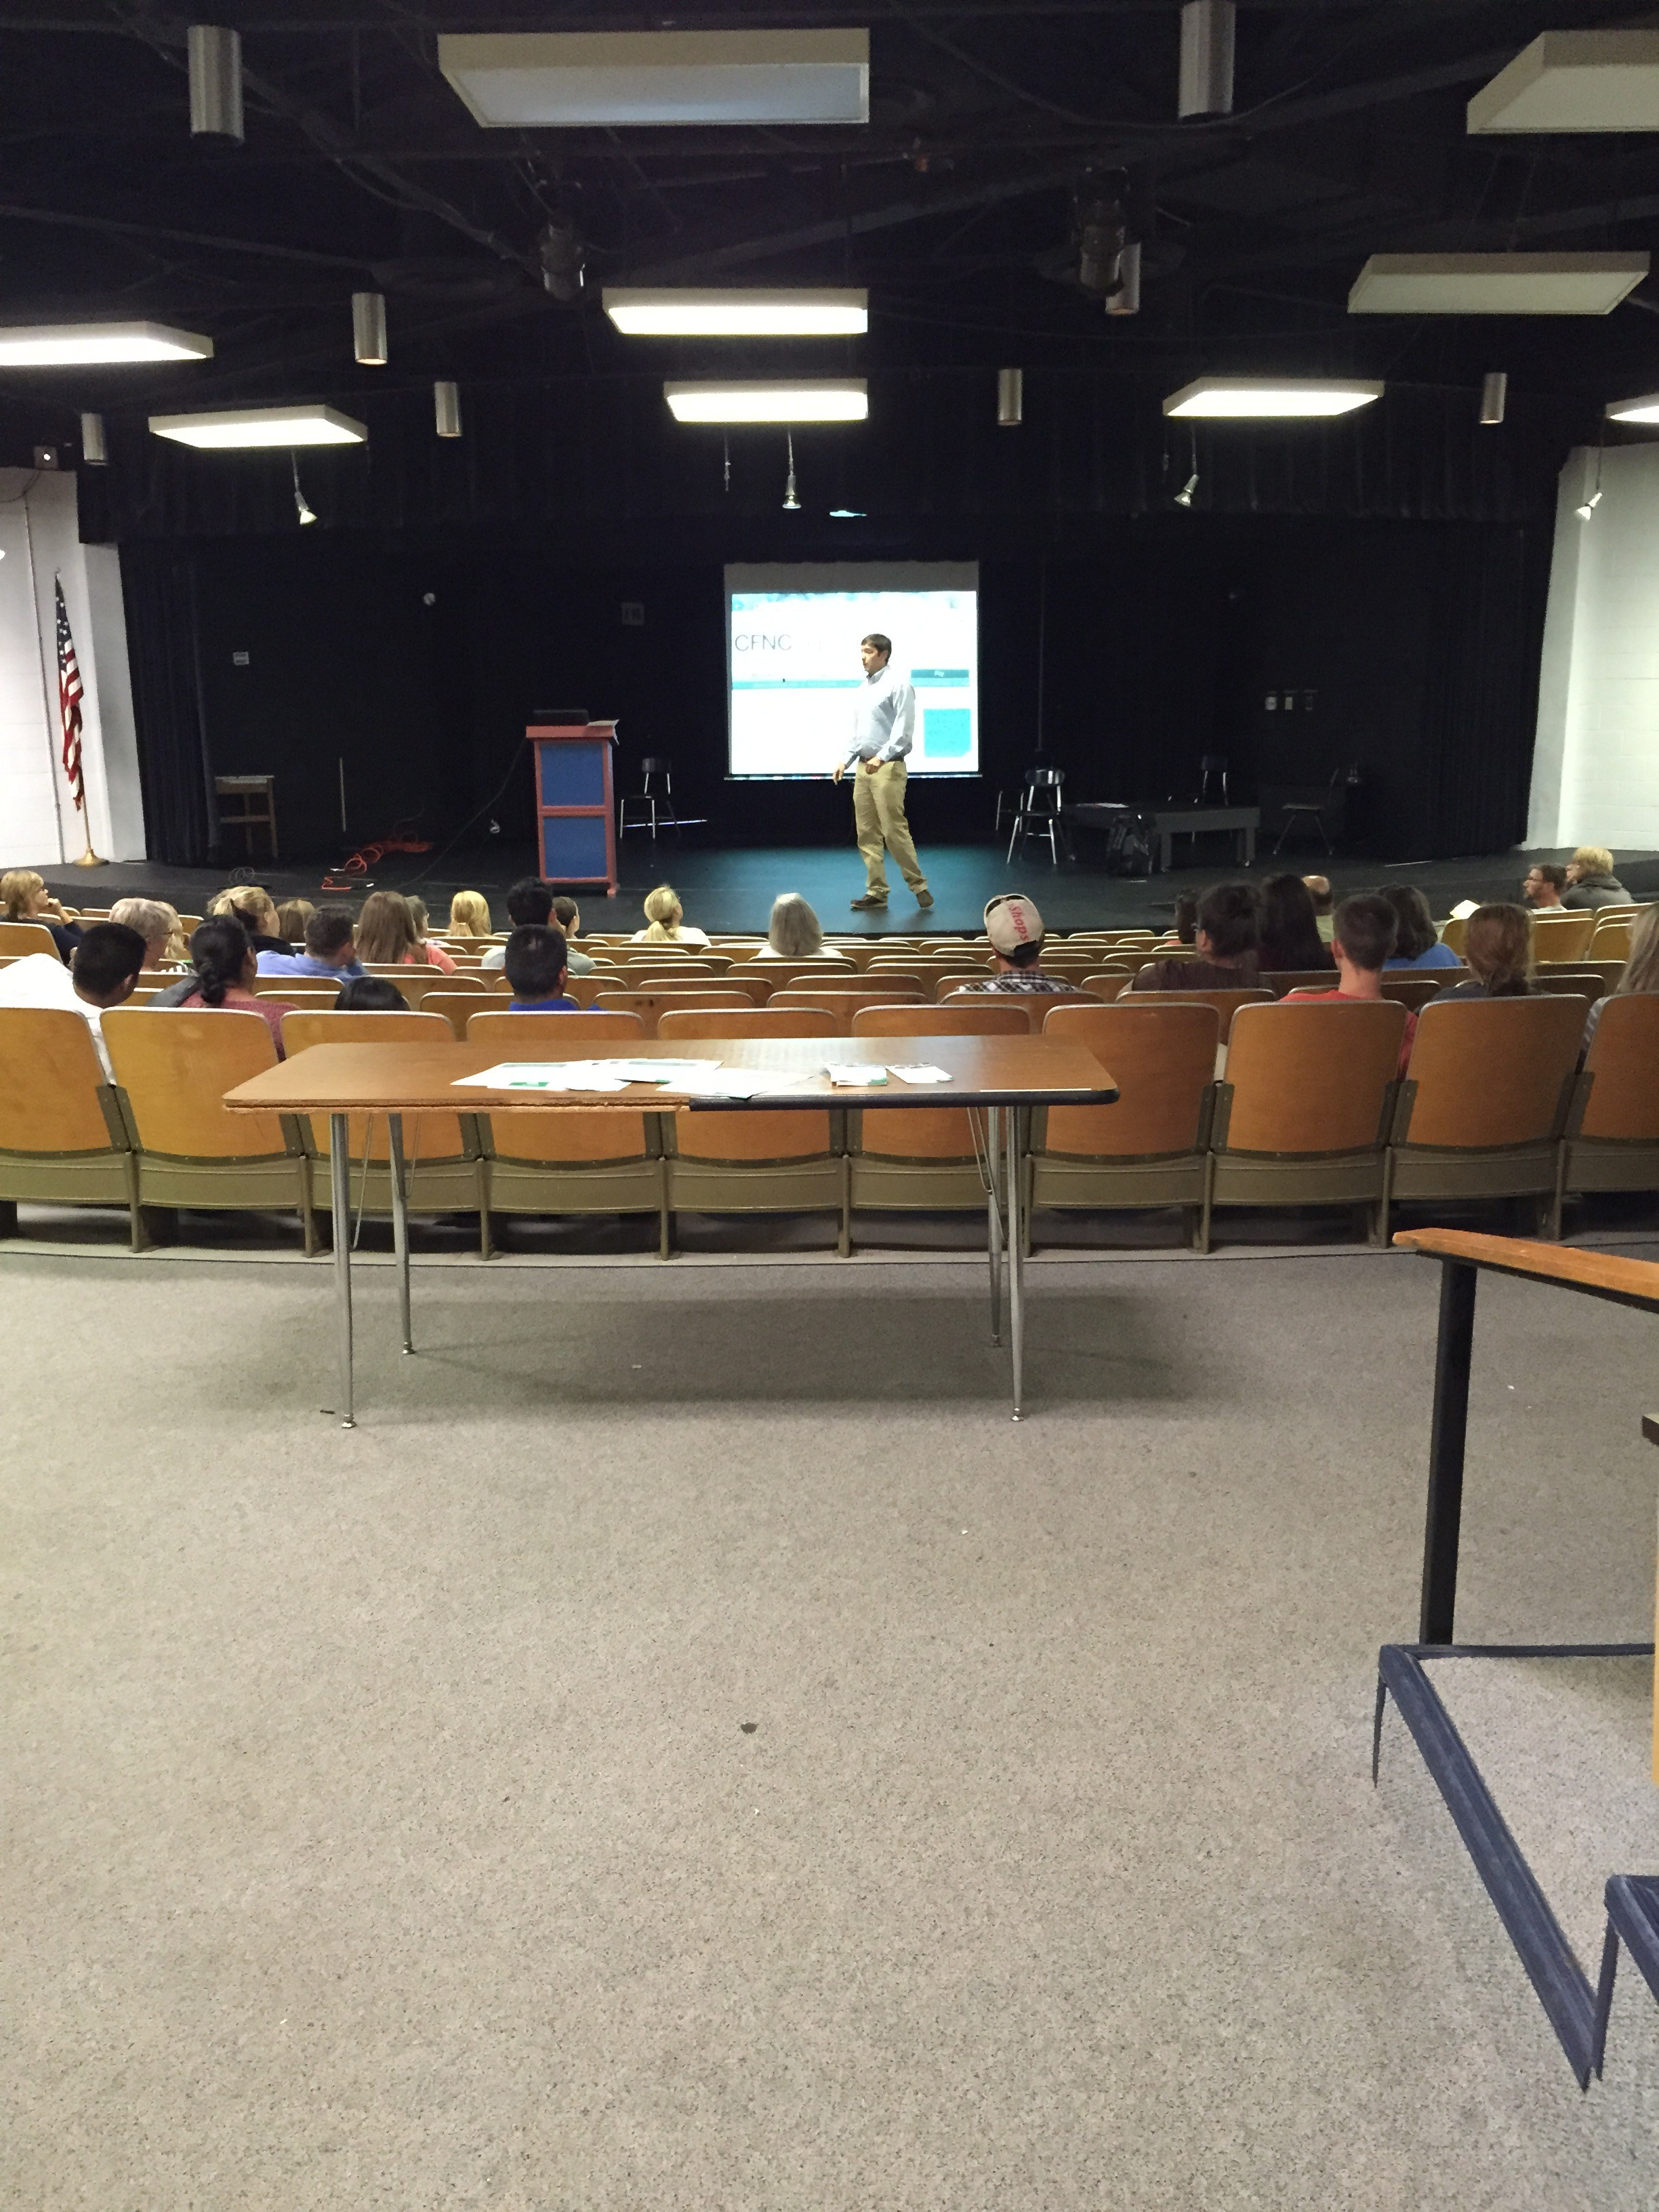 Information shared about CFNC with juniors and seniors